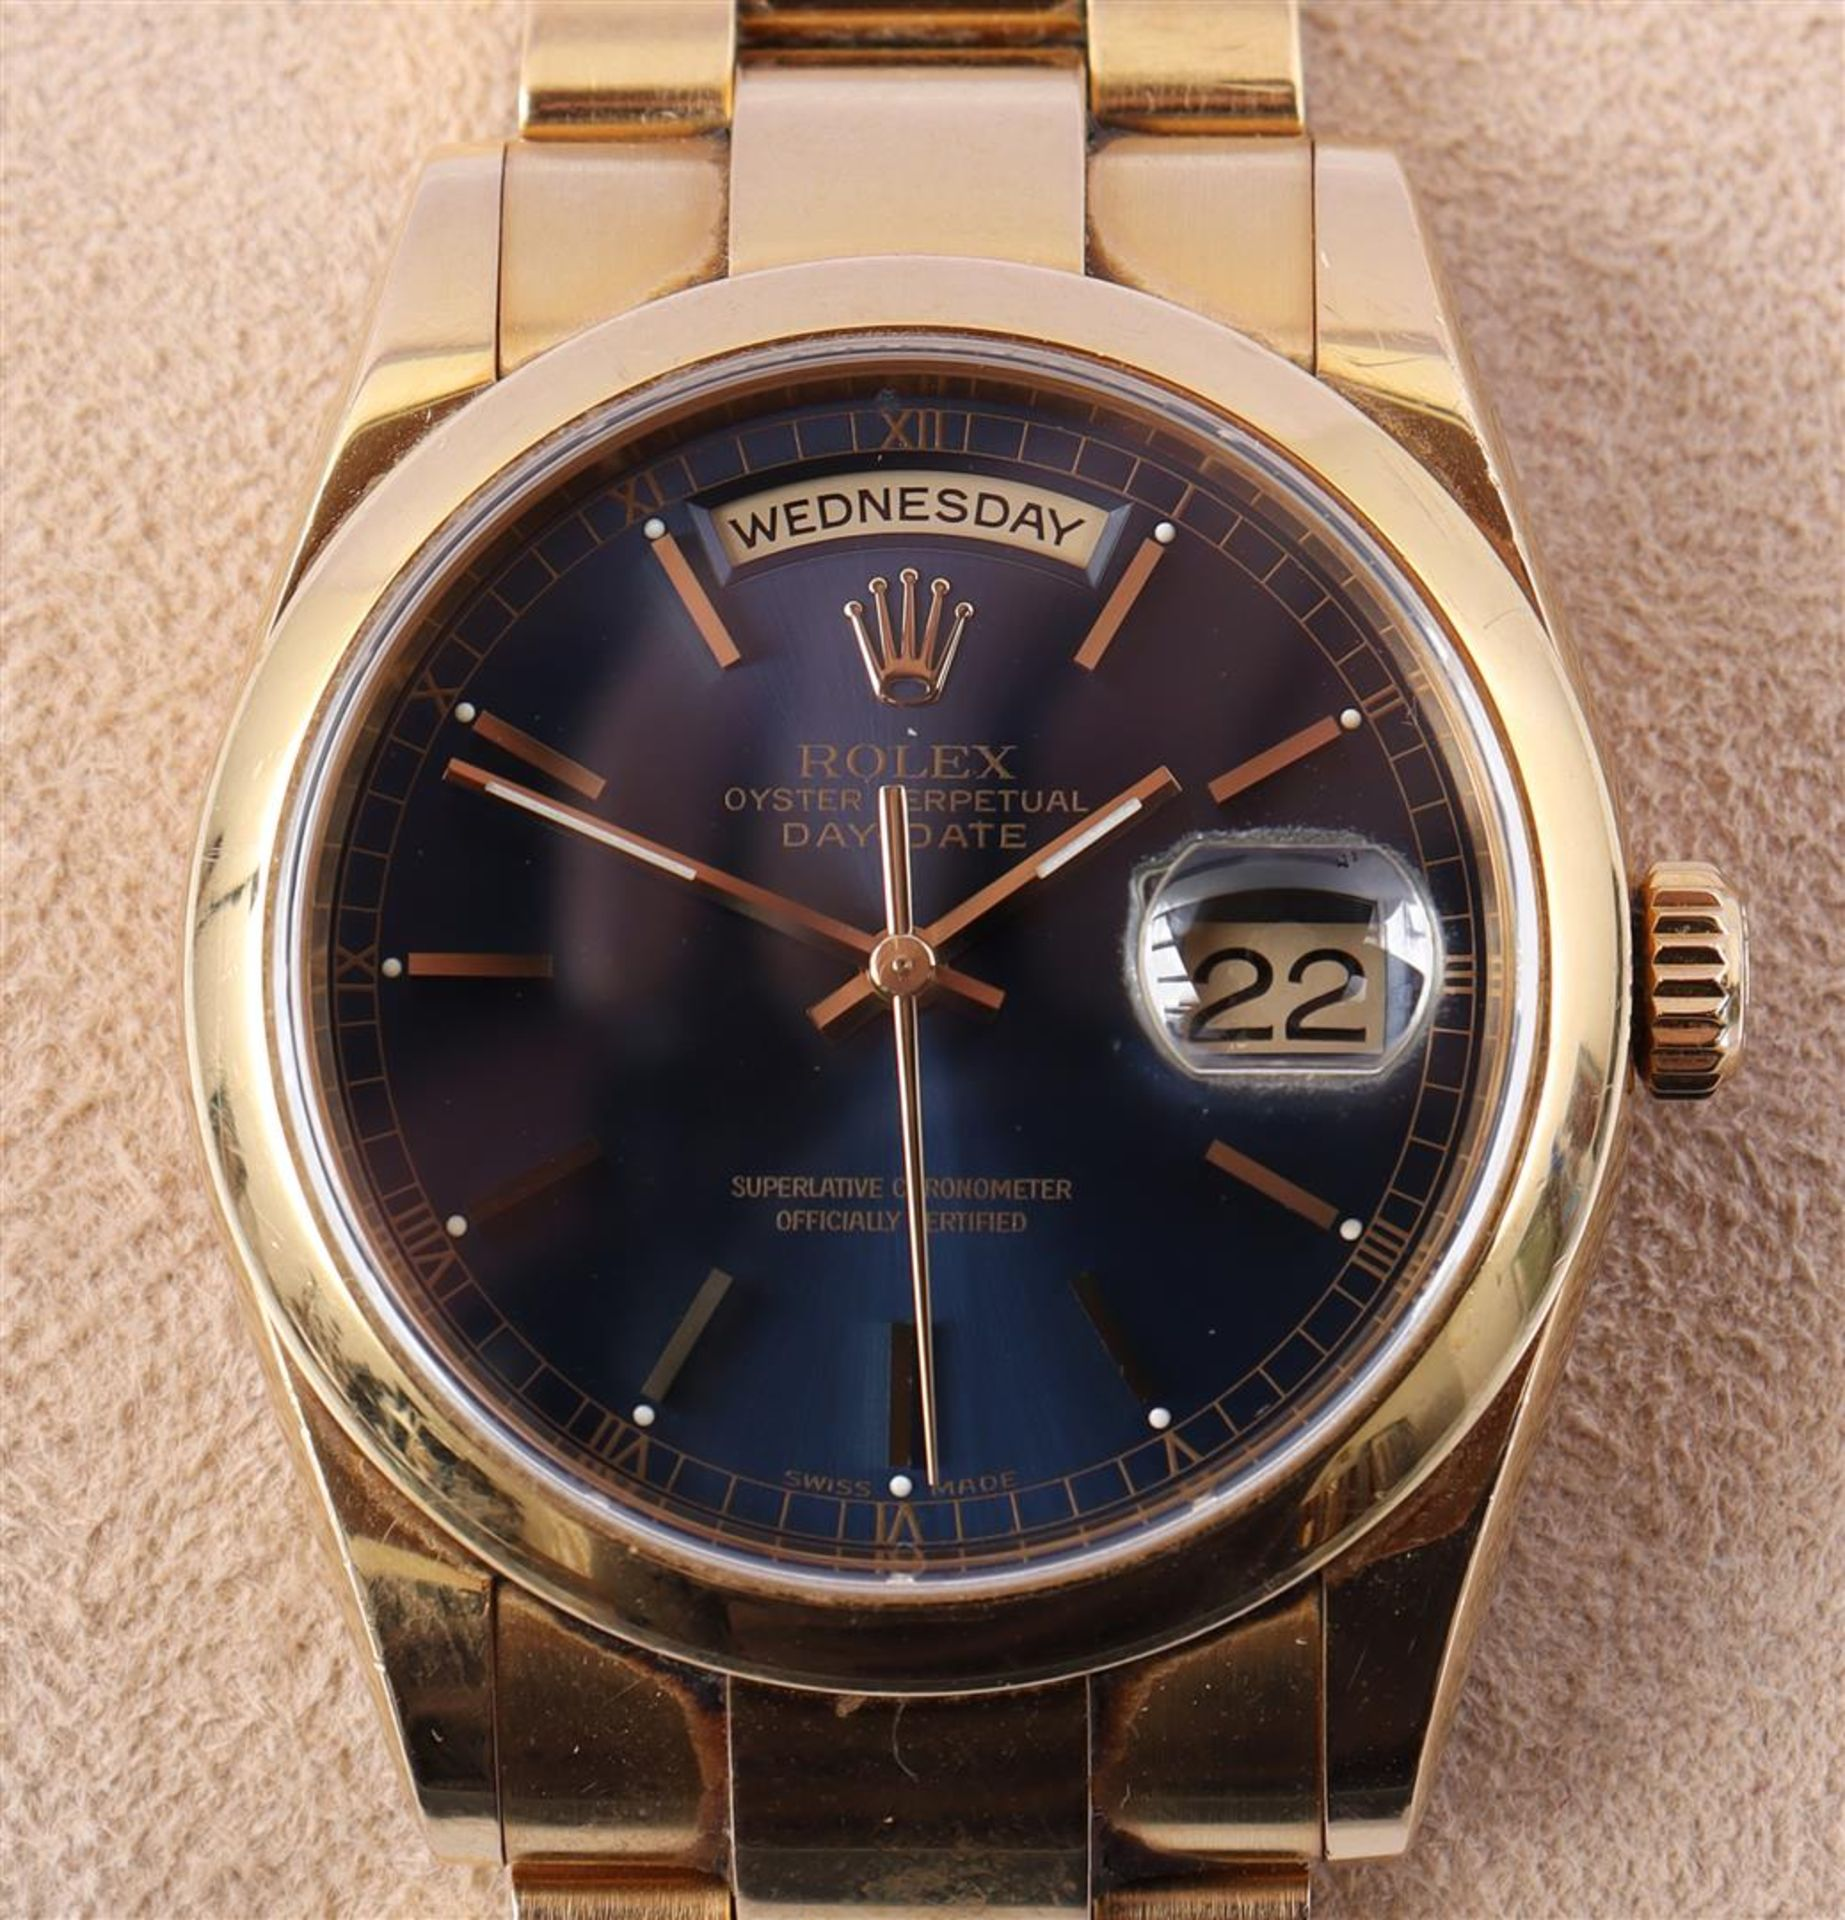 Rolex Oyster Perpetual Day Date men's wristwatch - Image 2 of 5